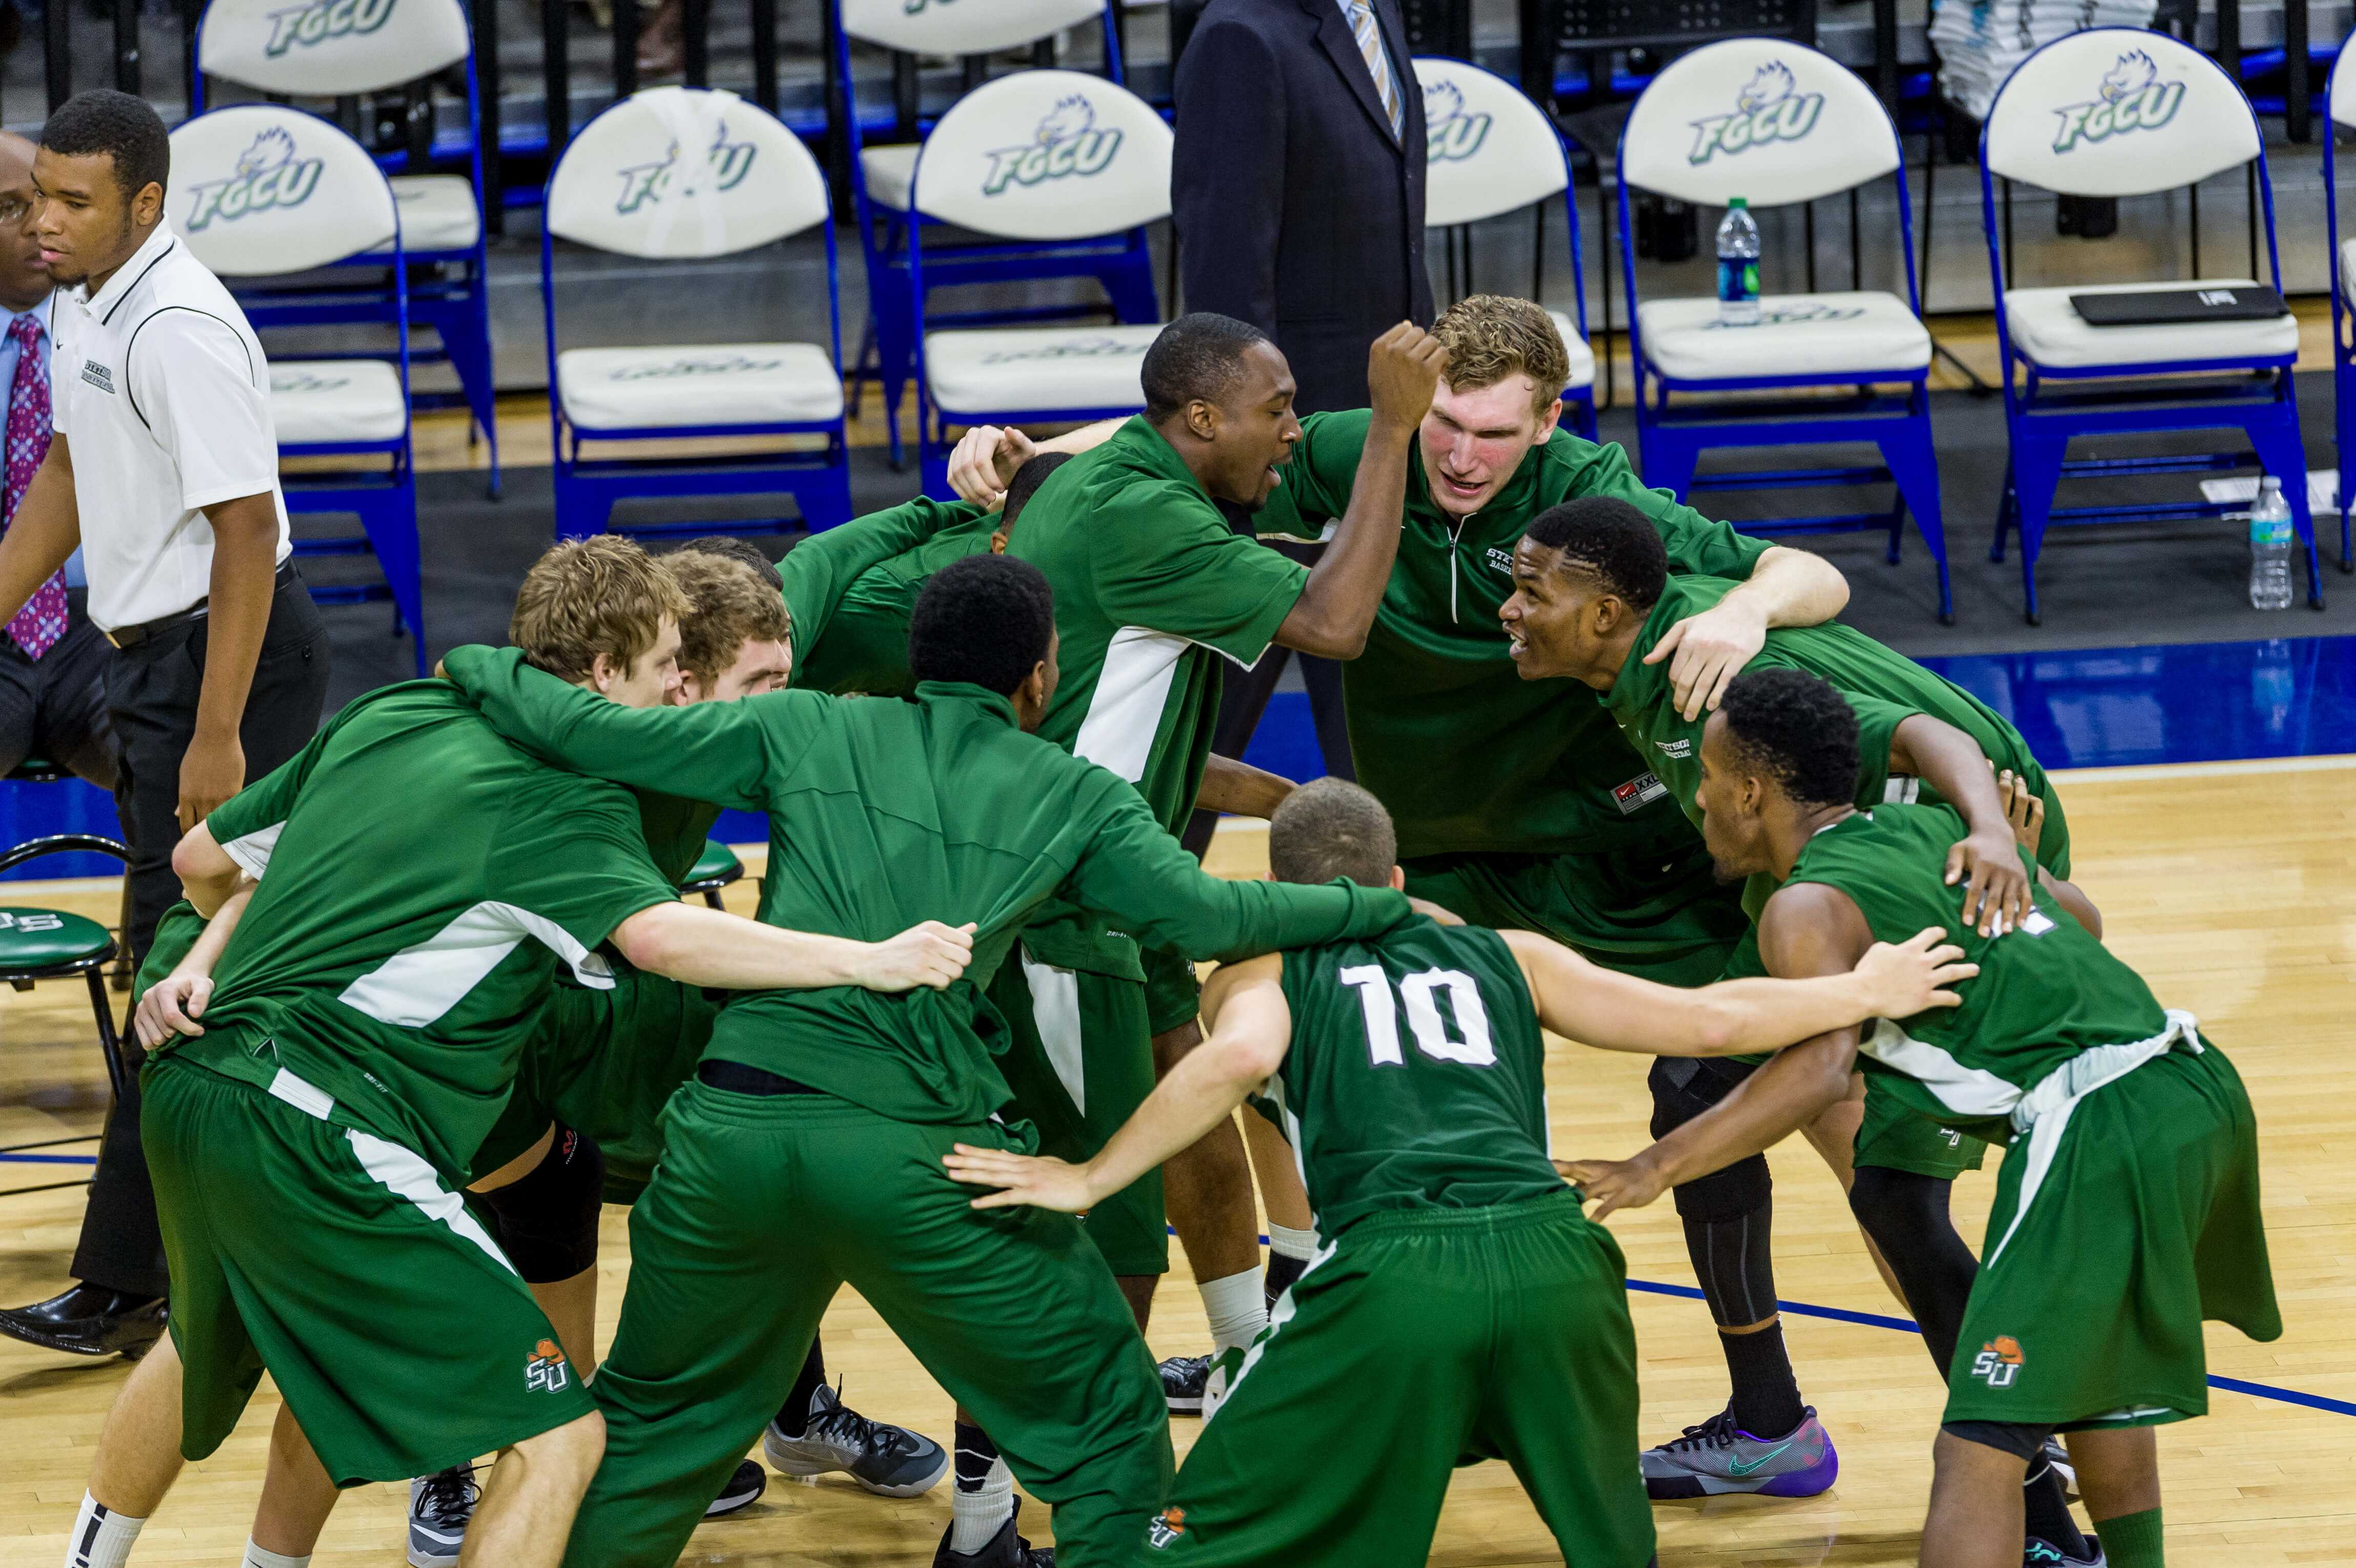 Stetson returns to A-Sun championship play after sanctions lifted